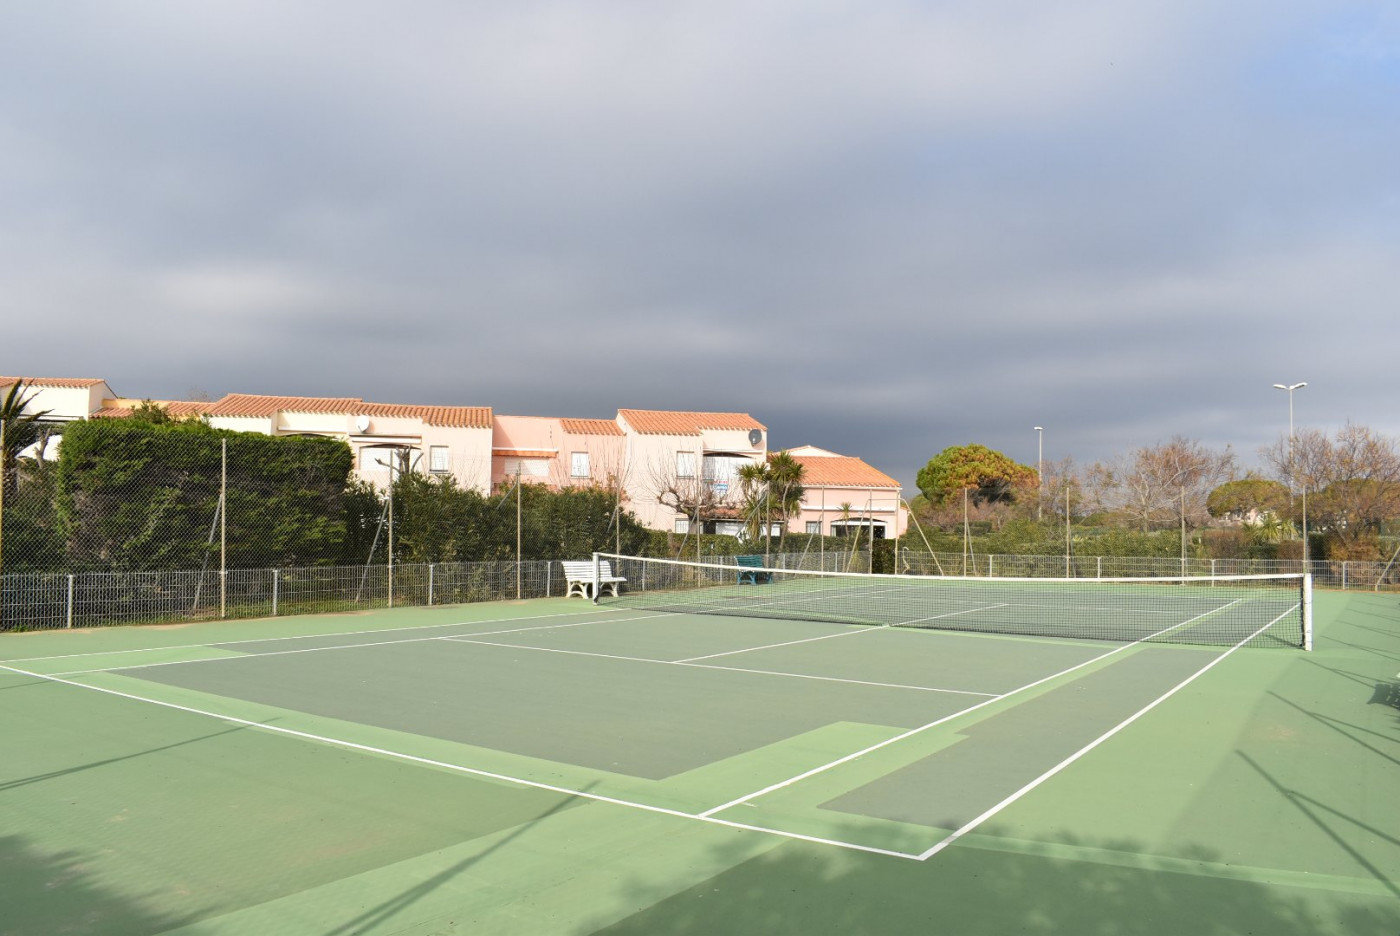 Apartment 200 m from the beach and pool and tennis court